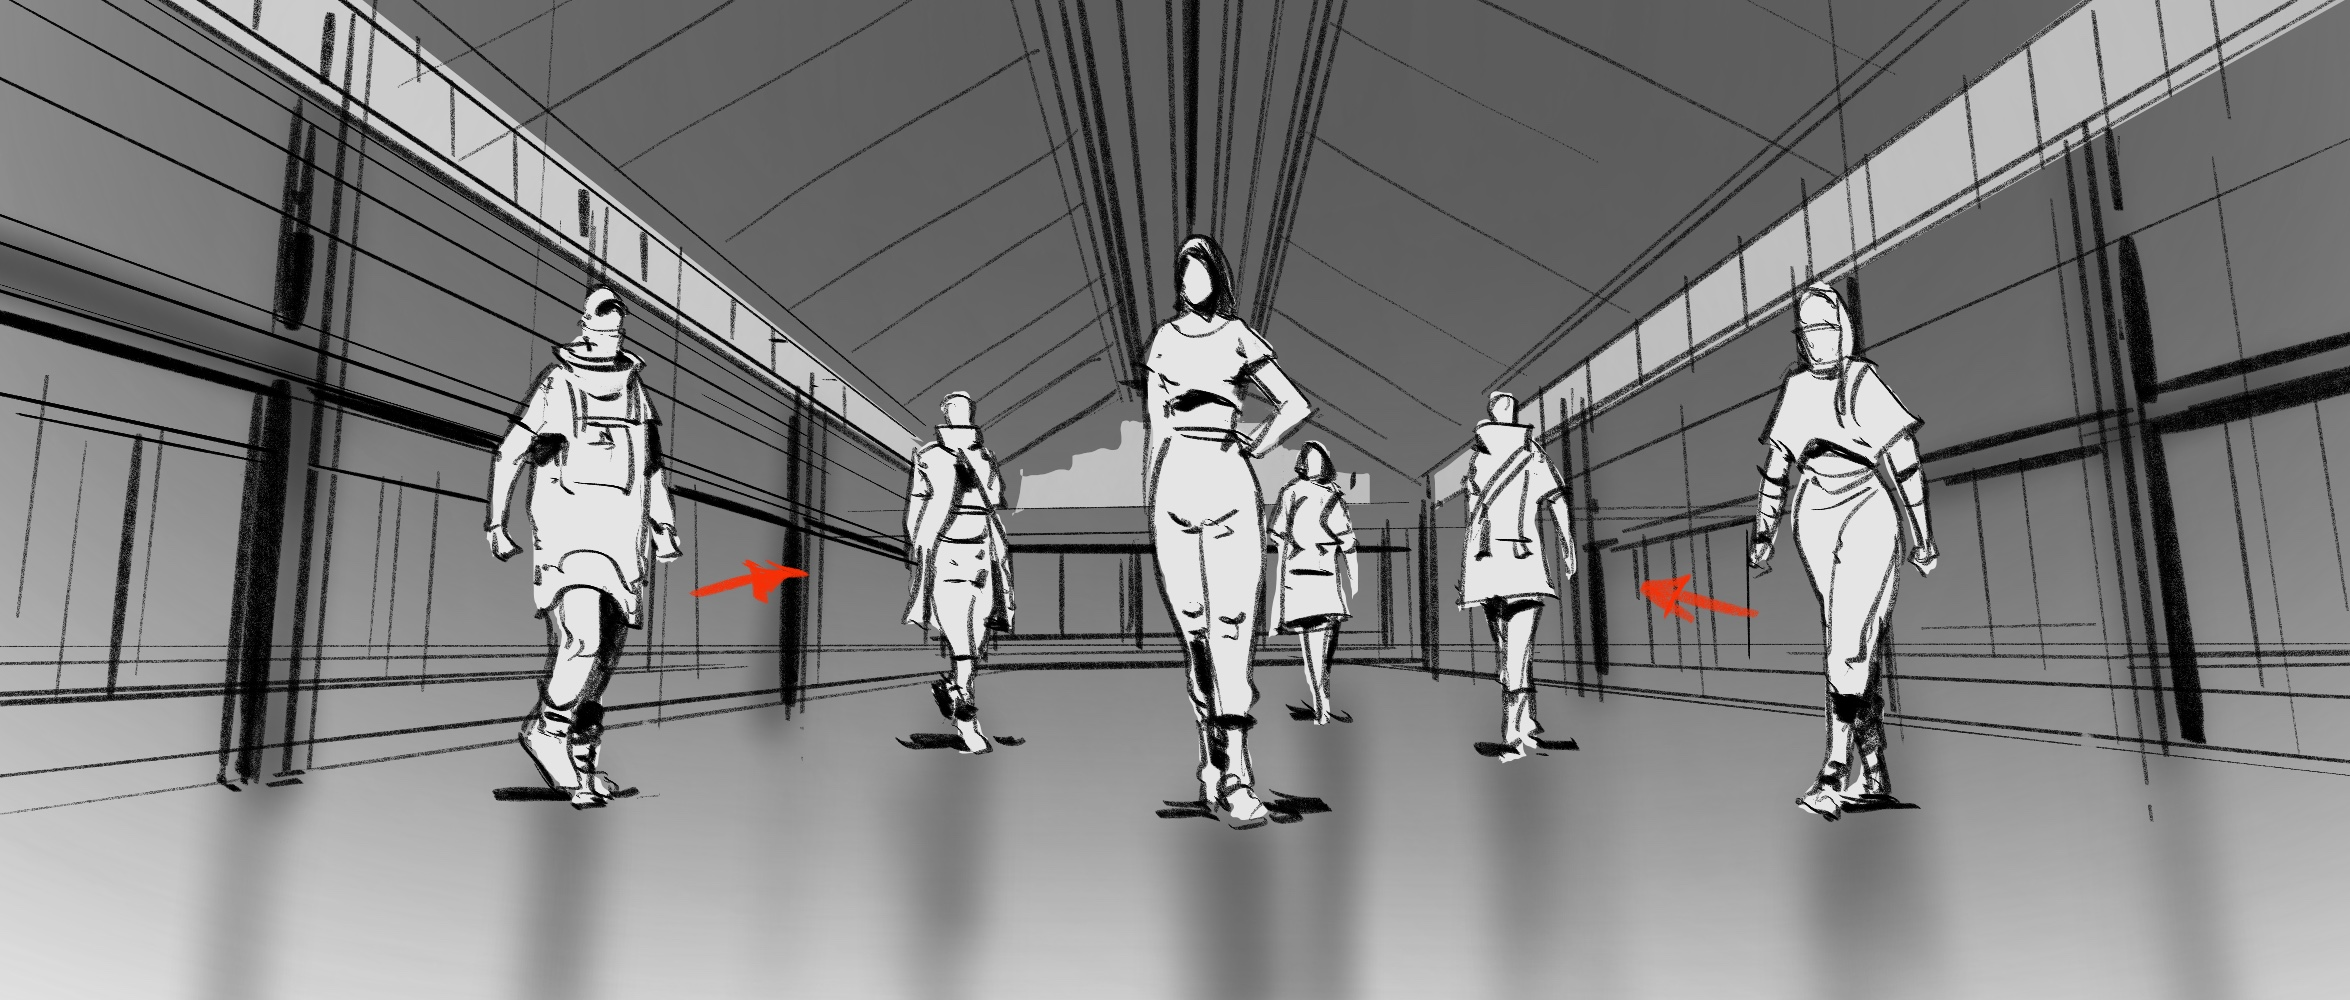 Lena_Boundaries_Storyboard_01_v02.jpg